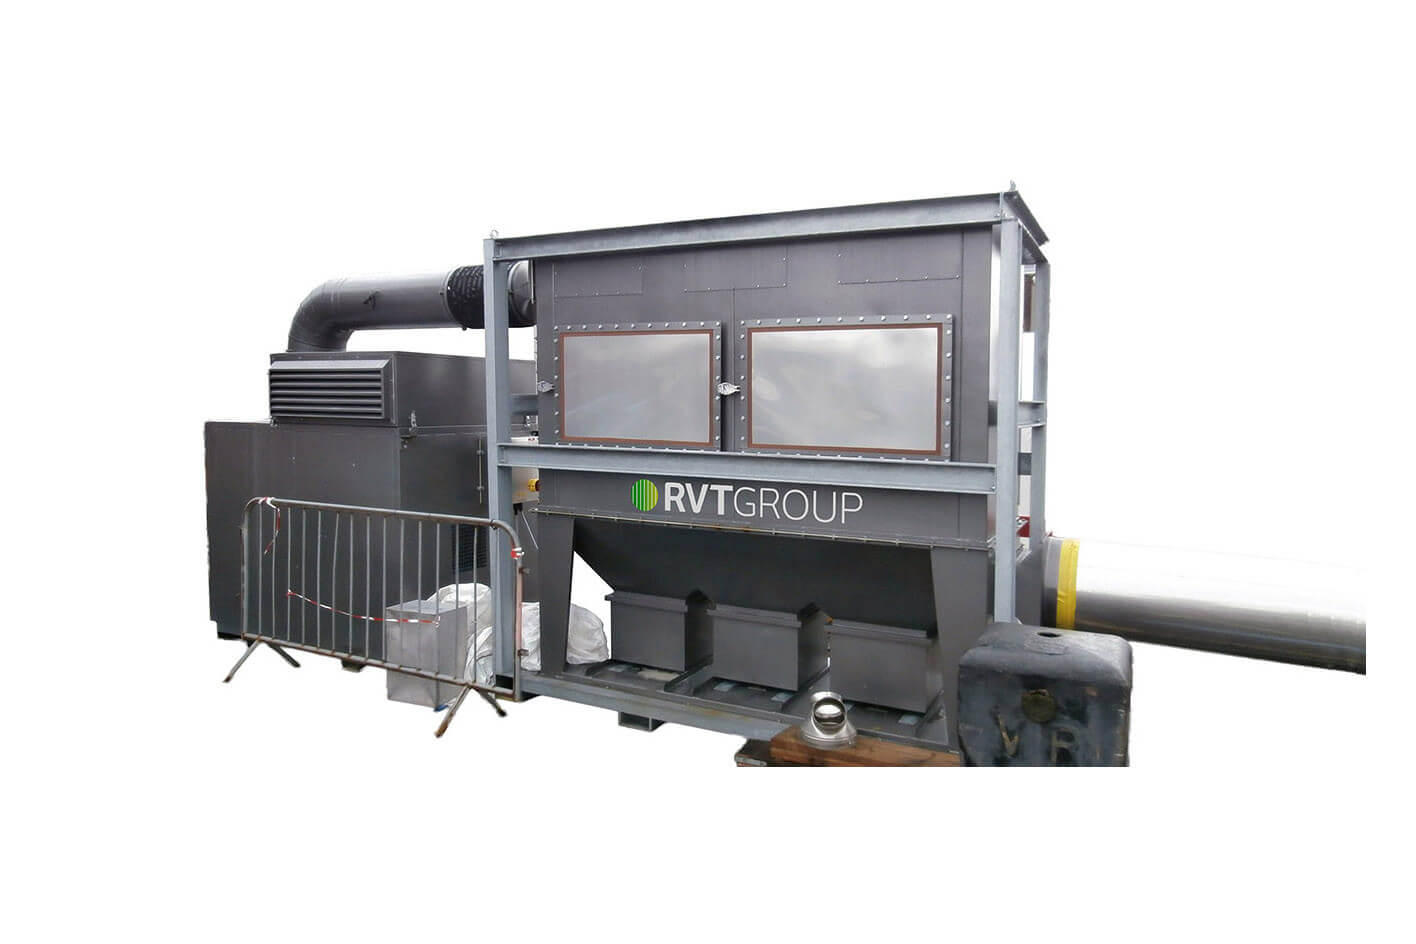 Dustex Clear Blast 900 Self-Contained Dust Extractor